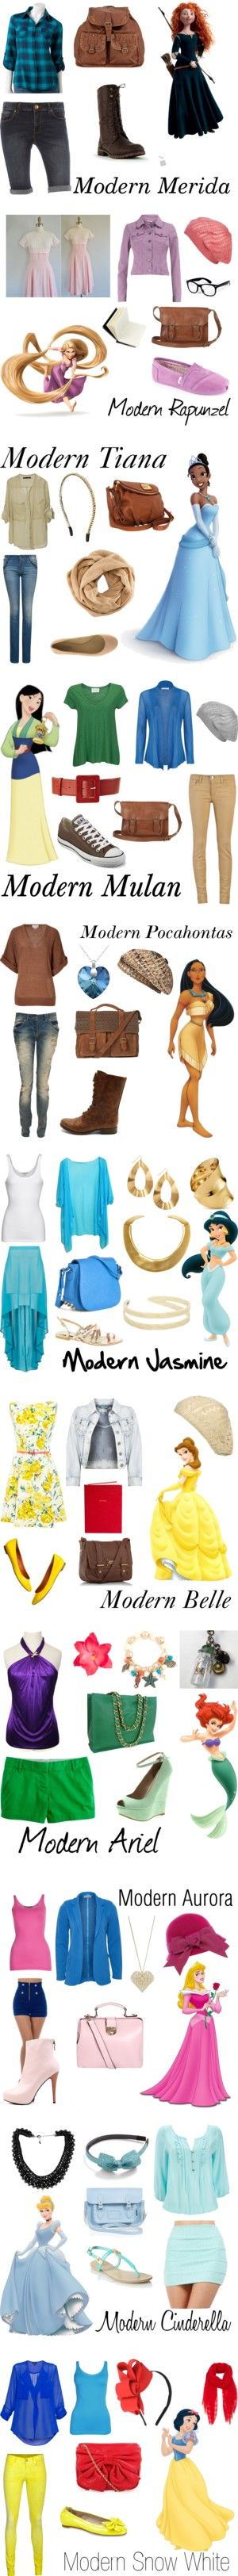 """Modern Disney Princesses"" by sharkbitegal on Polyvore"